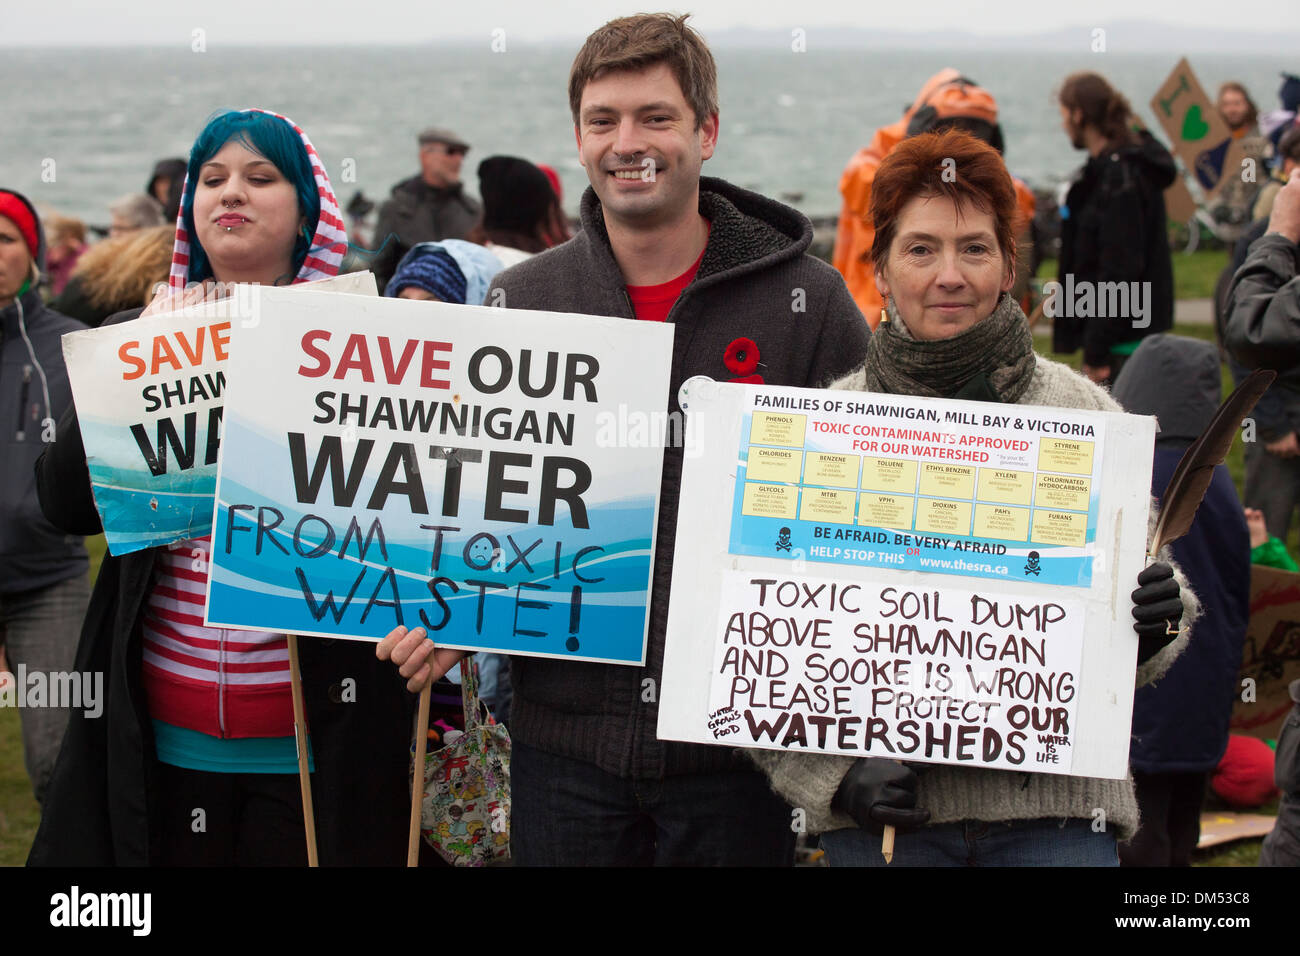 Anti toxic waste dumping signs and demonstrators at rally-Victoria, British Columbia, Canada. - Stock Image